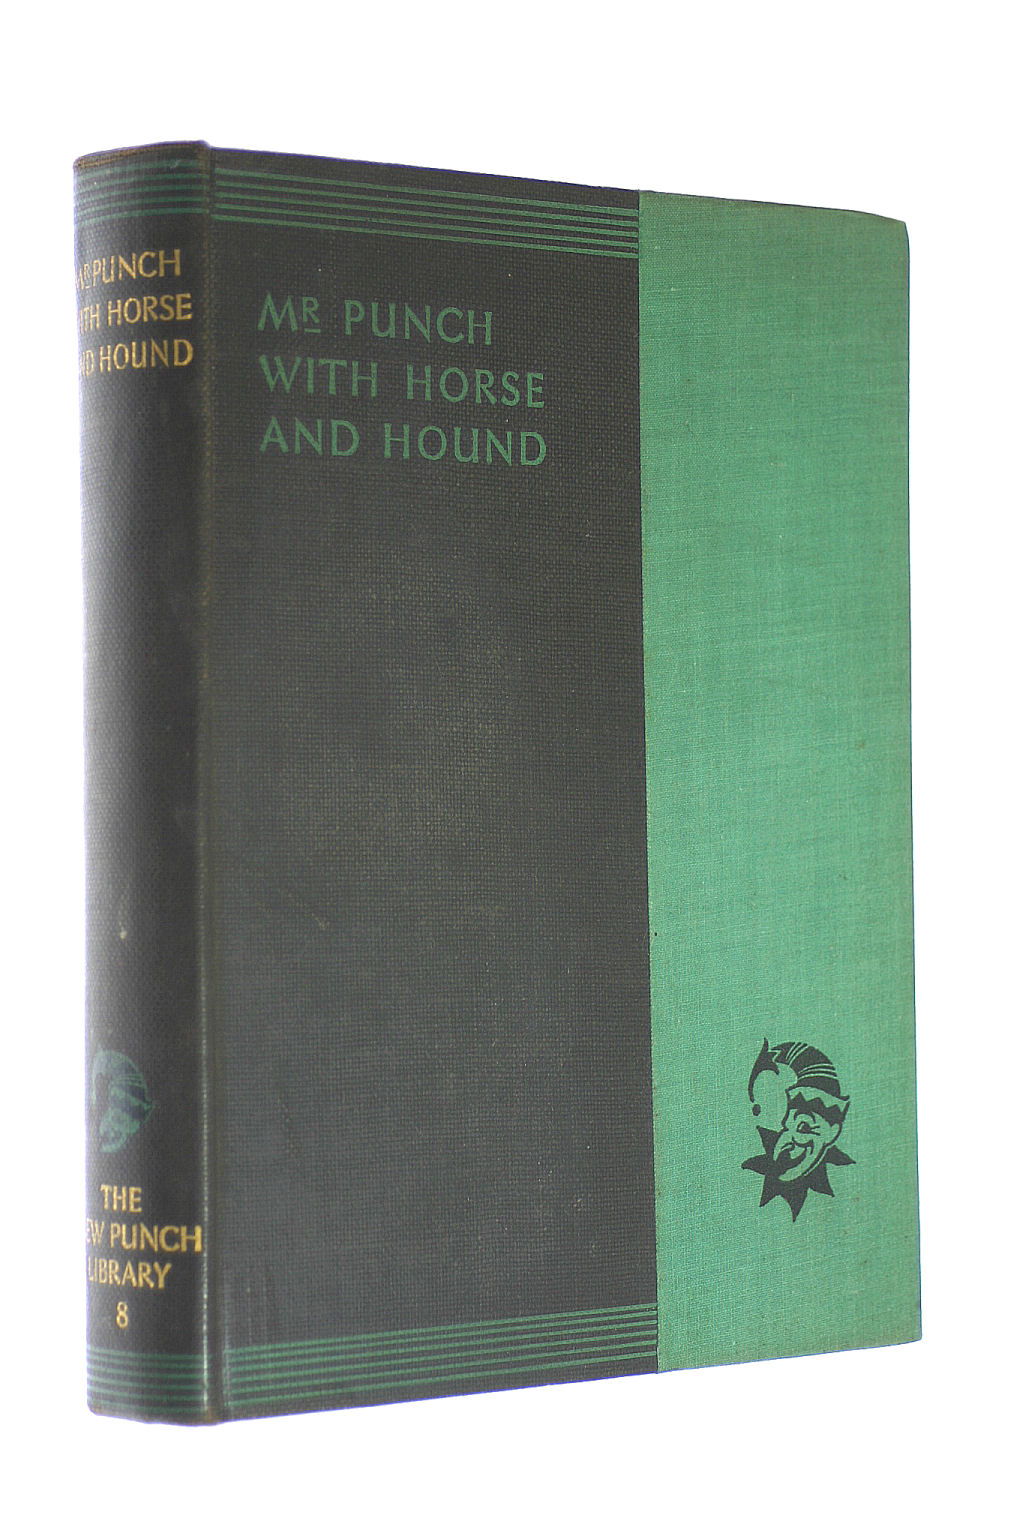 """Image for Mr. Punch With Horse And Hound (The New """"Punch"""" Library Volume 8)"""